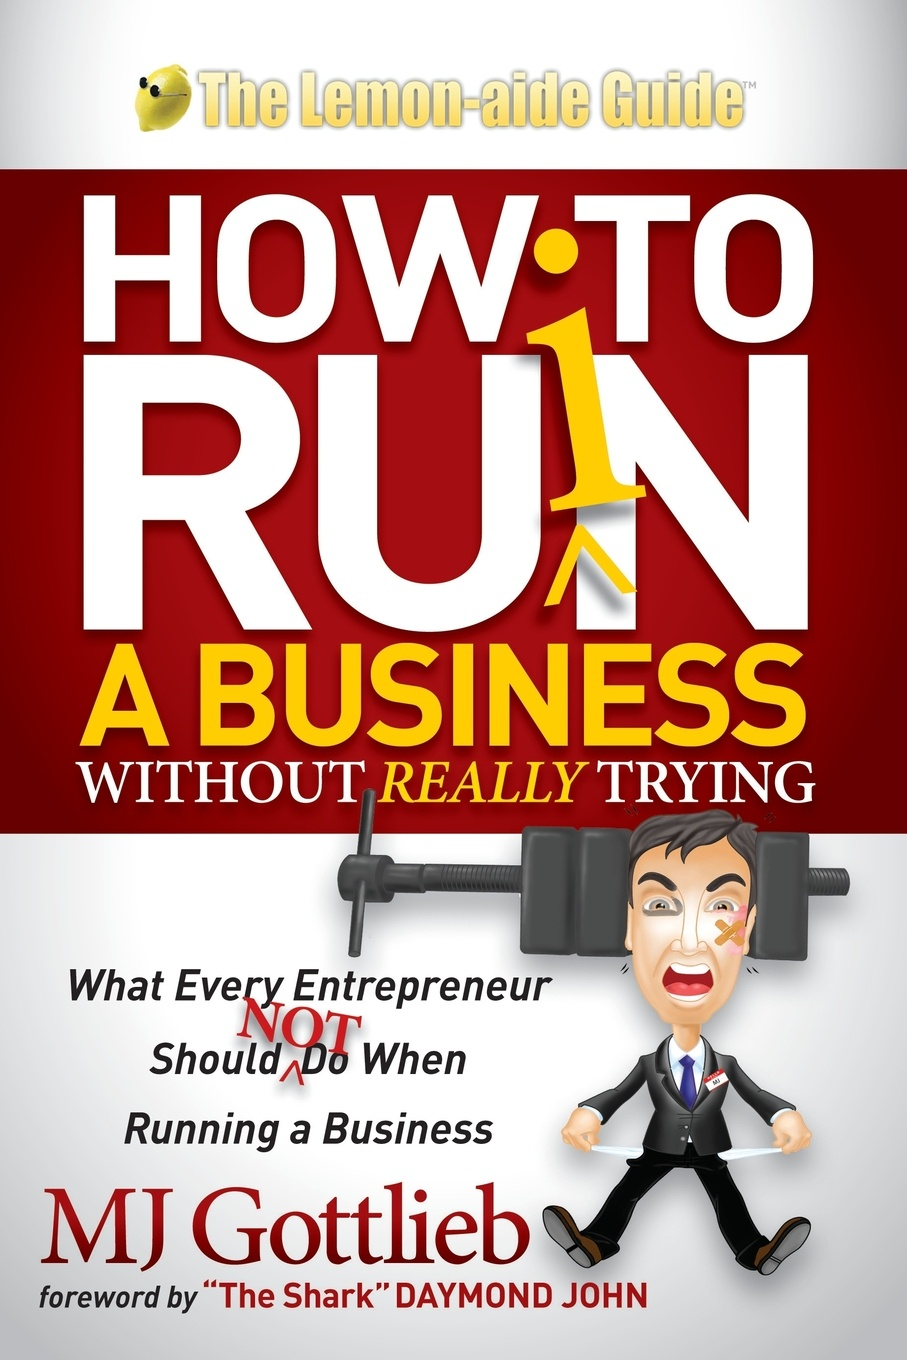 MJ Gottlieb How to Ruin a Business Without Really Trying. What Every Entrepreneur Should Not Do When Running a Business keven ashley gambold how to blow a million dollars an ex entrepreneur s tale of what not to do